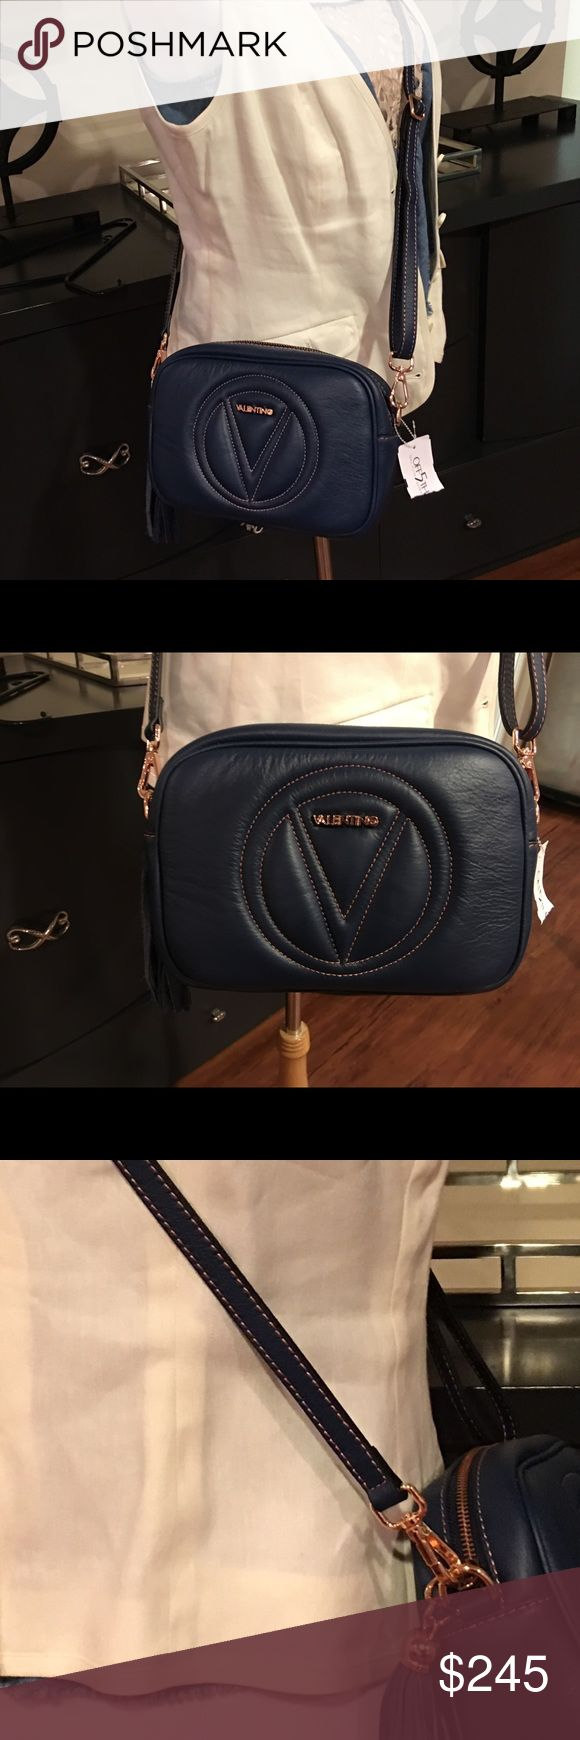 Valentino Mia Sauvage VA 9302 Crossbody Brand new with tags and papers to show this is an Authentic Valentino Crossbody. Comes with Dust bag. Valentino Bags Crossbody Bags